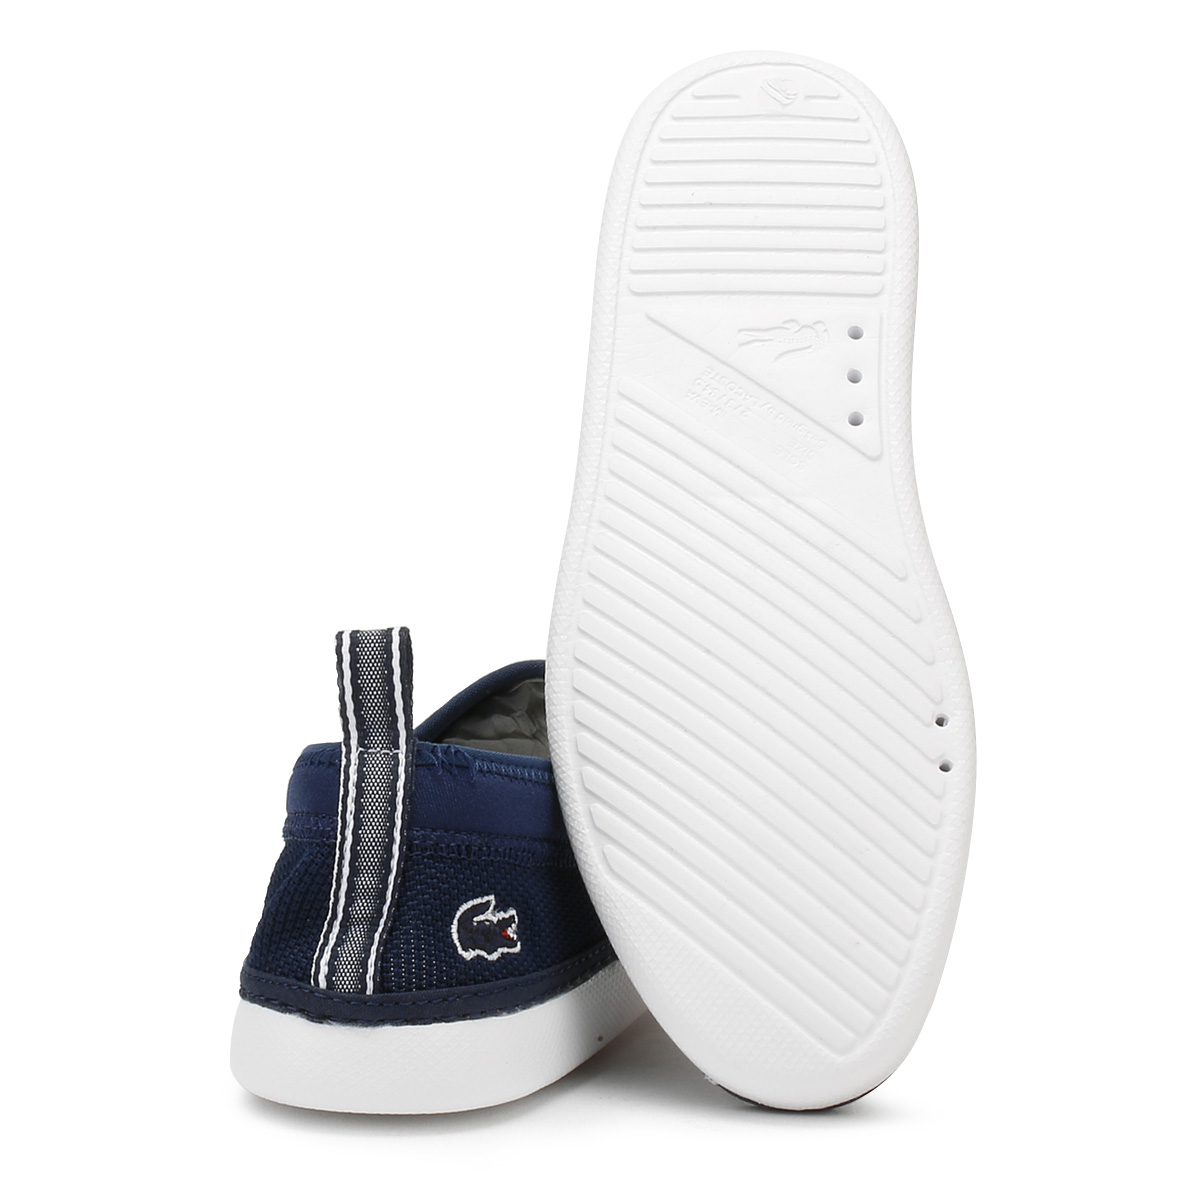 947a62582 Lacoste Boys L.ydro Navy white Slip on Trainers Euro Size 38 UK ...